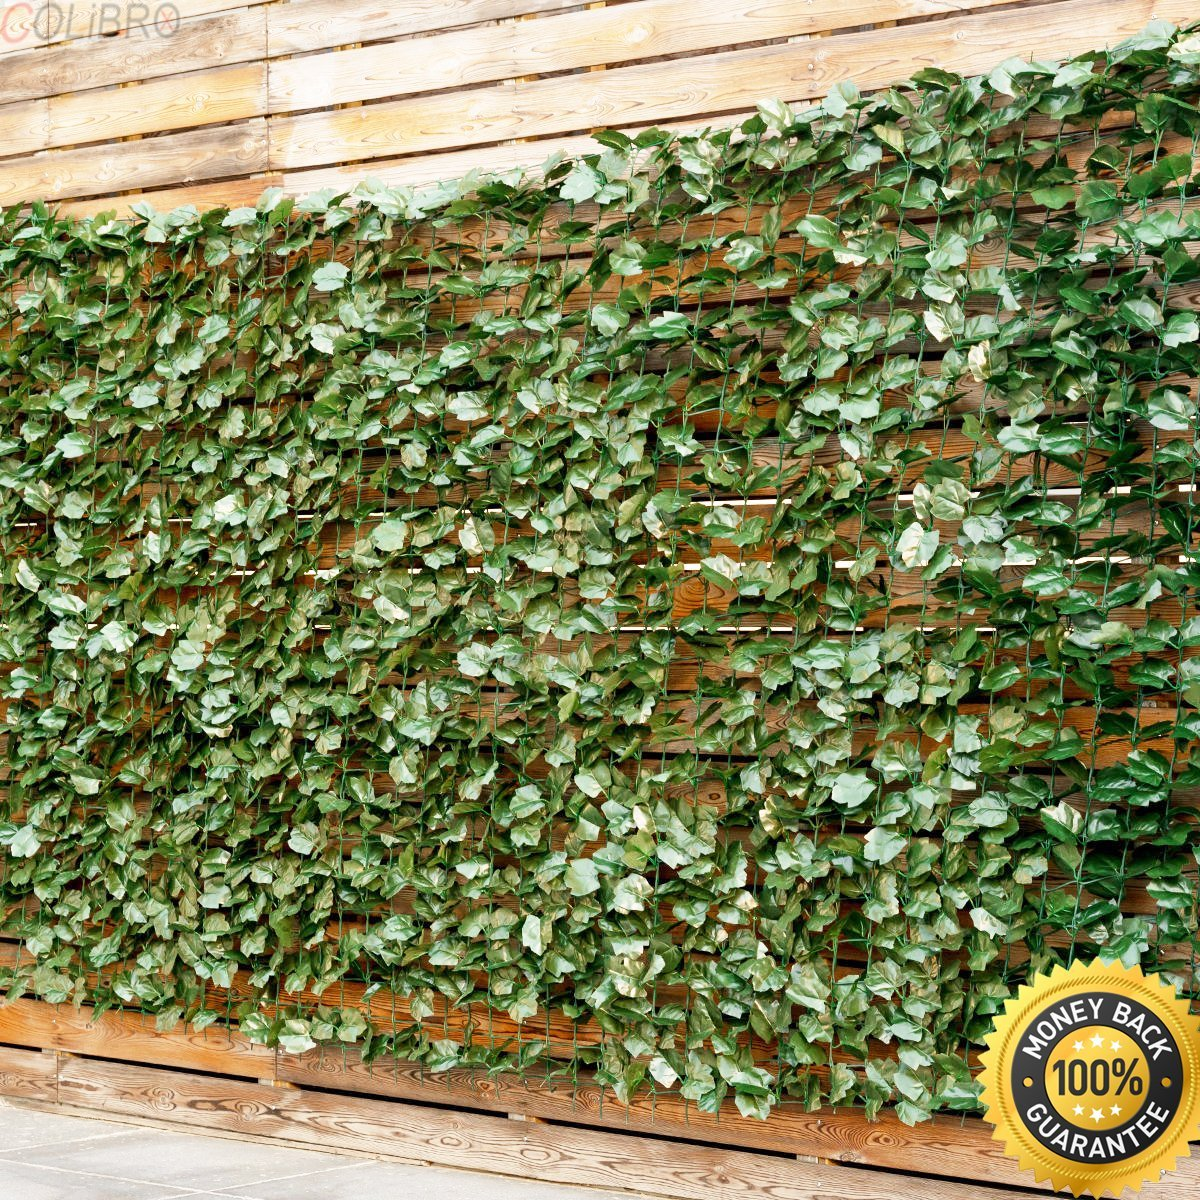 Buy Colibrox 40 X95 Faux Ivy Leaf Decorative Privacy Fence Screen